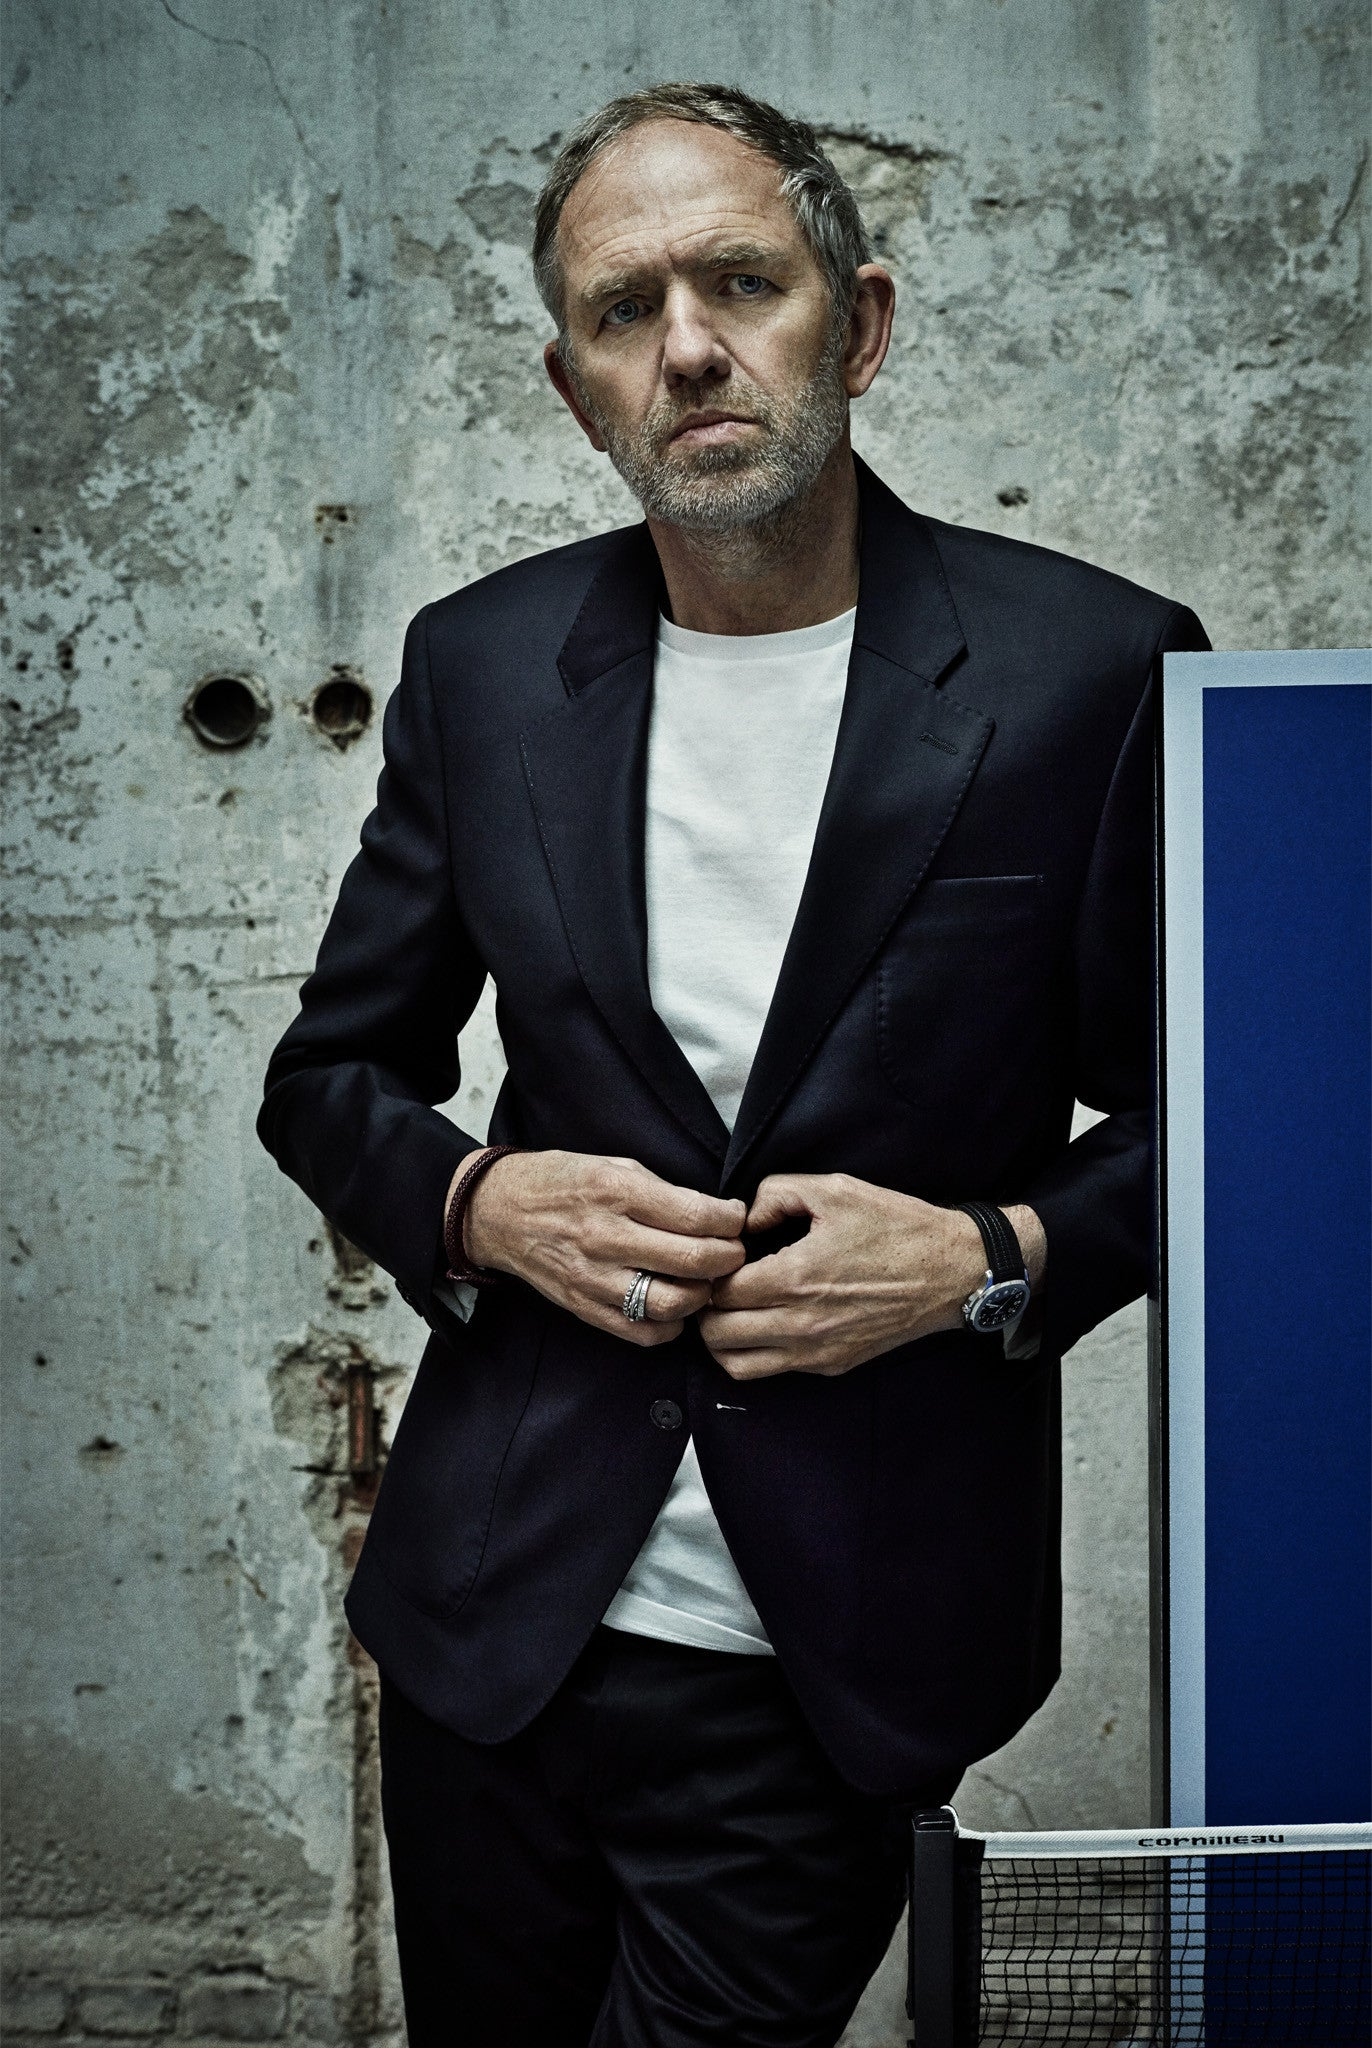 Anton Corbijn wearing Havre Blazer Half Lined, Lothar T-shirt Cotton, Gehry Chino Trousers bY SALLE PRIVÉE